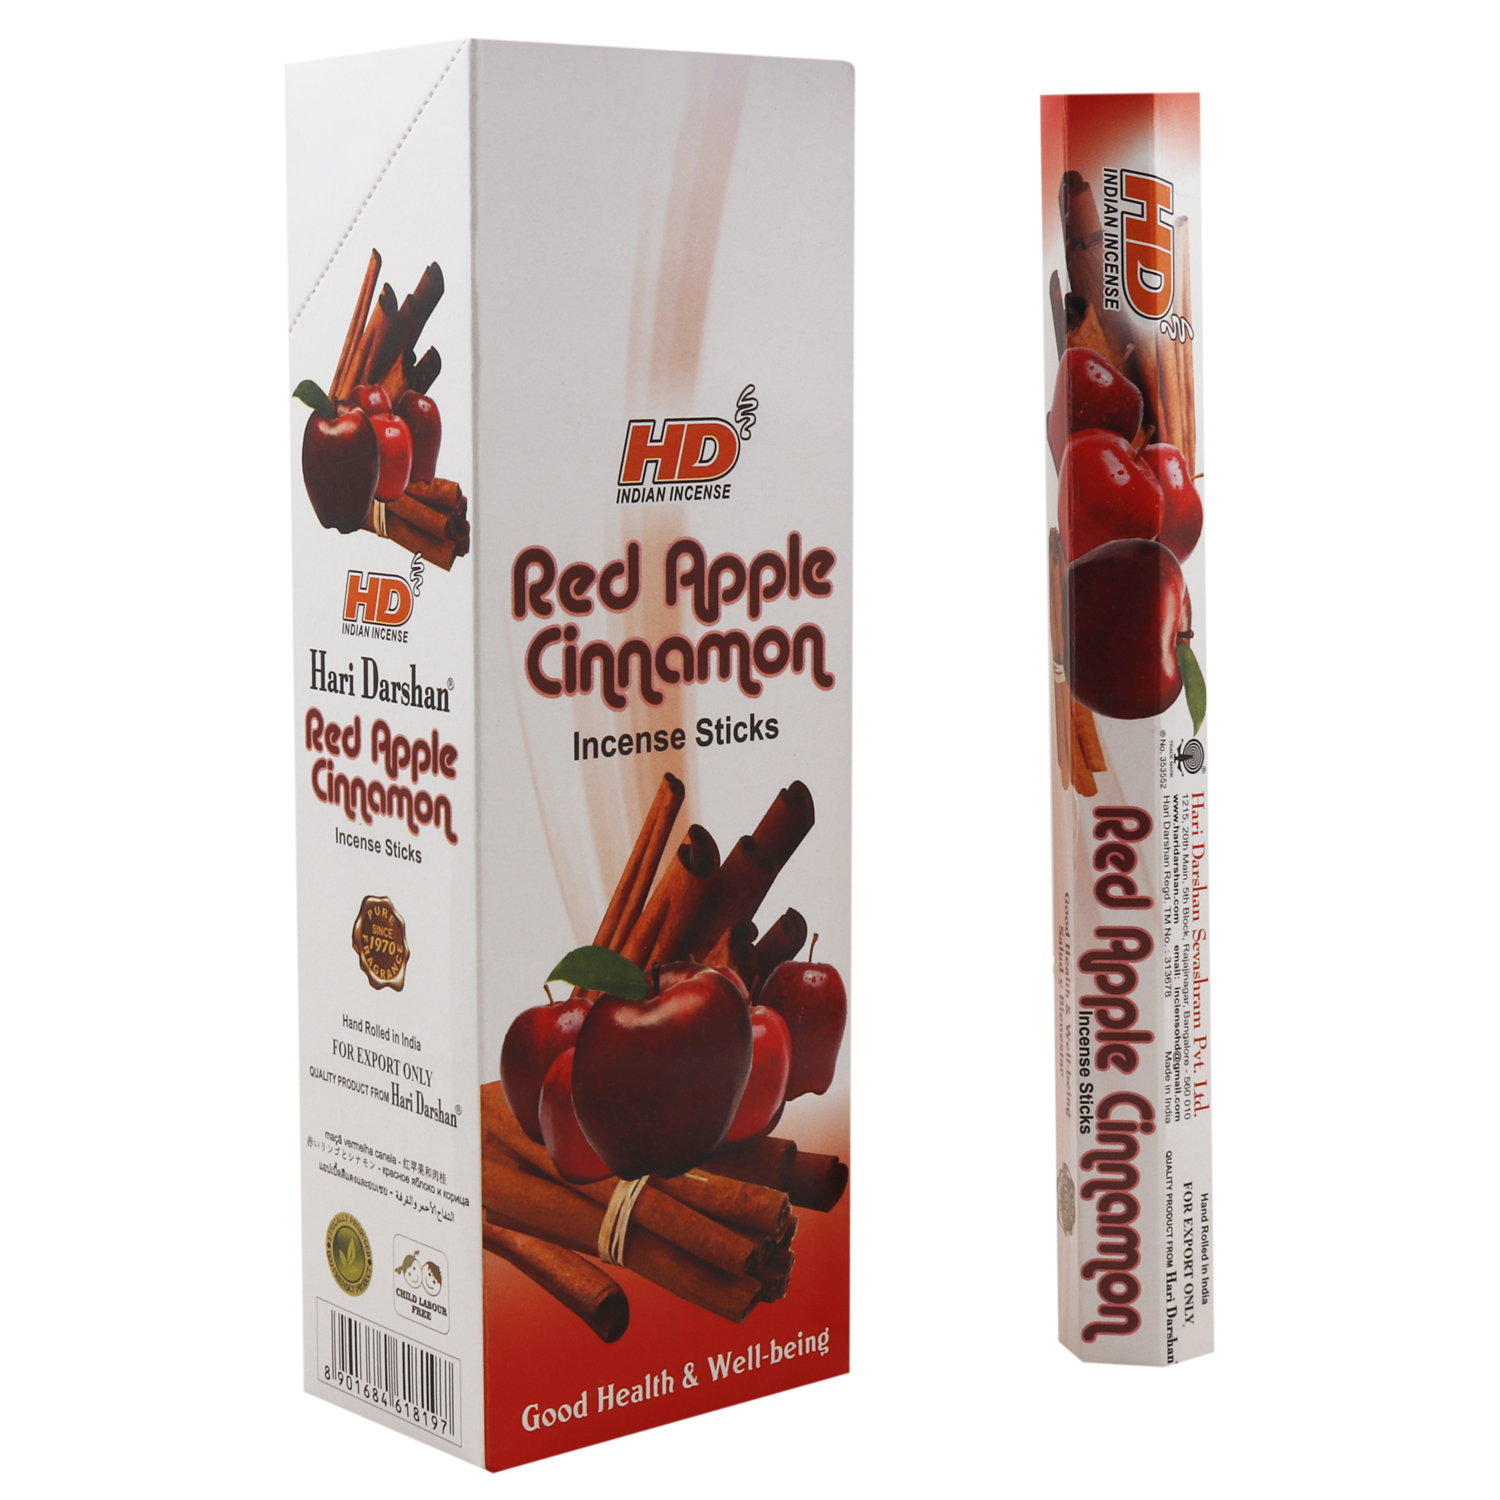 HARI DARSHAN RED APPLE CINNAMON / MANZANA ROJA CANELA